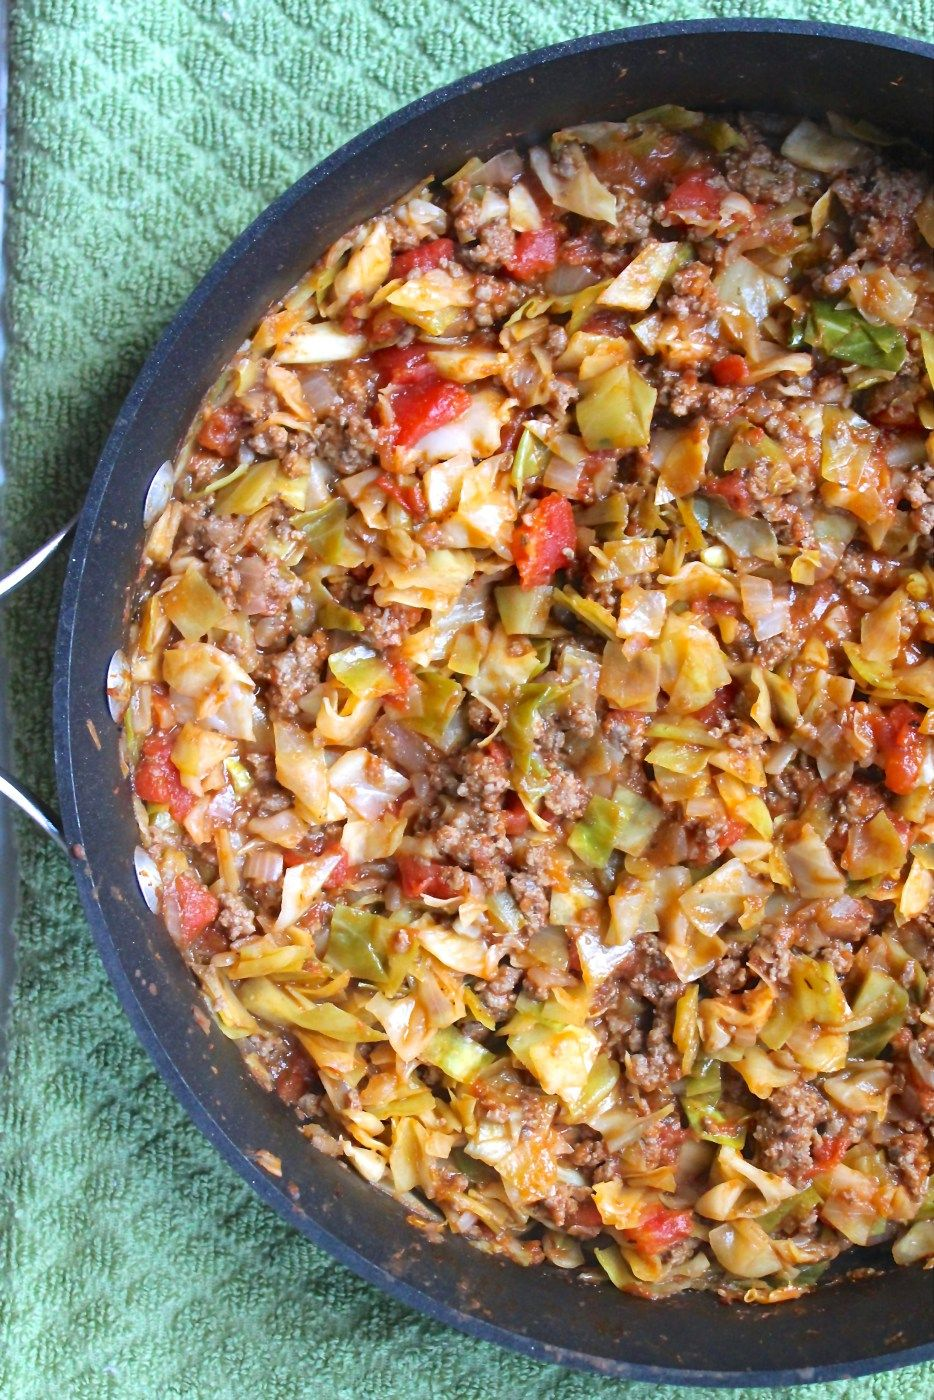 Amish One Pan Ground Beef And Cabbage Skillet Recipe Ground Beef And Cabbage Ground Beef Recipes Cabbage Recipes